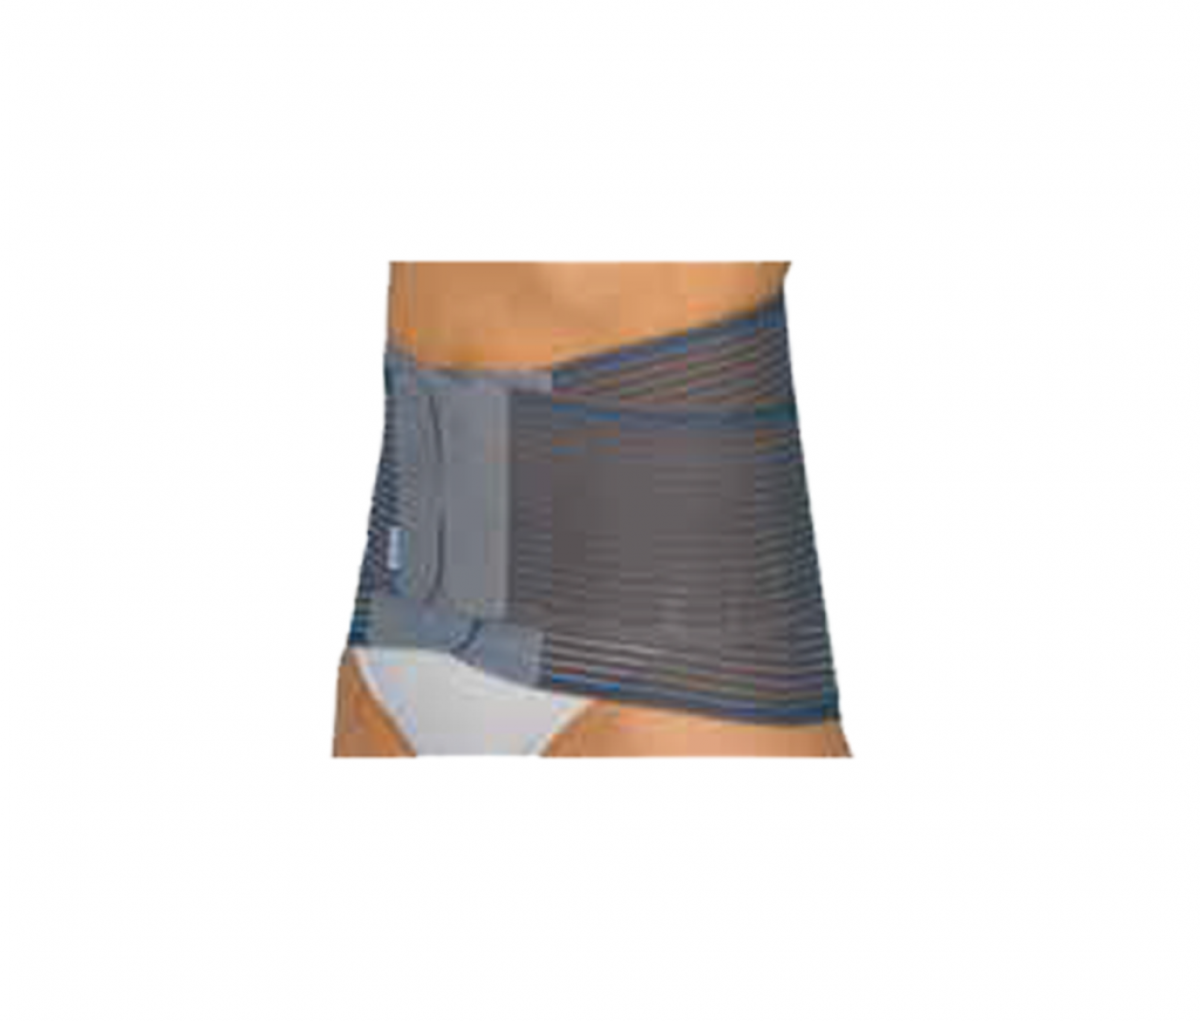 ACTION SEMIRIGID BACK SUPPORT WITH TENSOR - S 981G